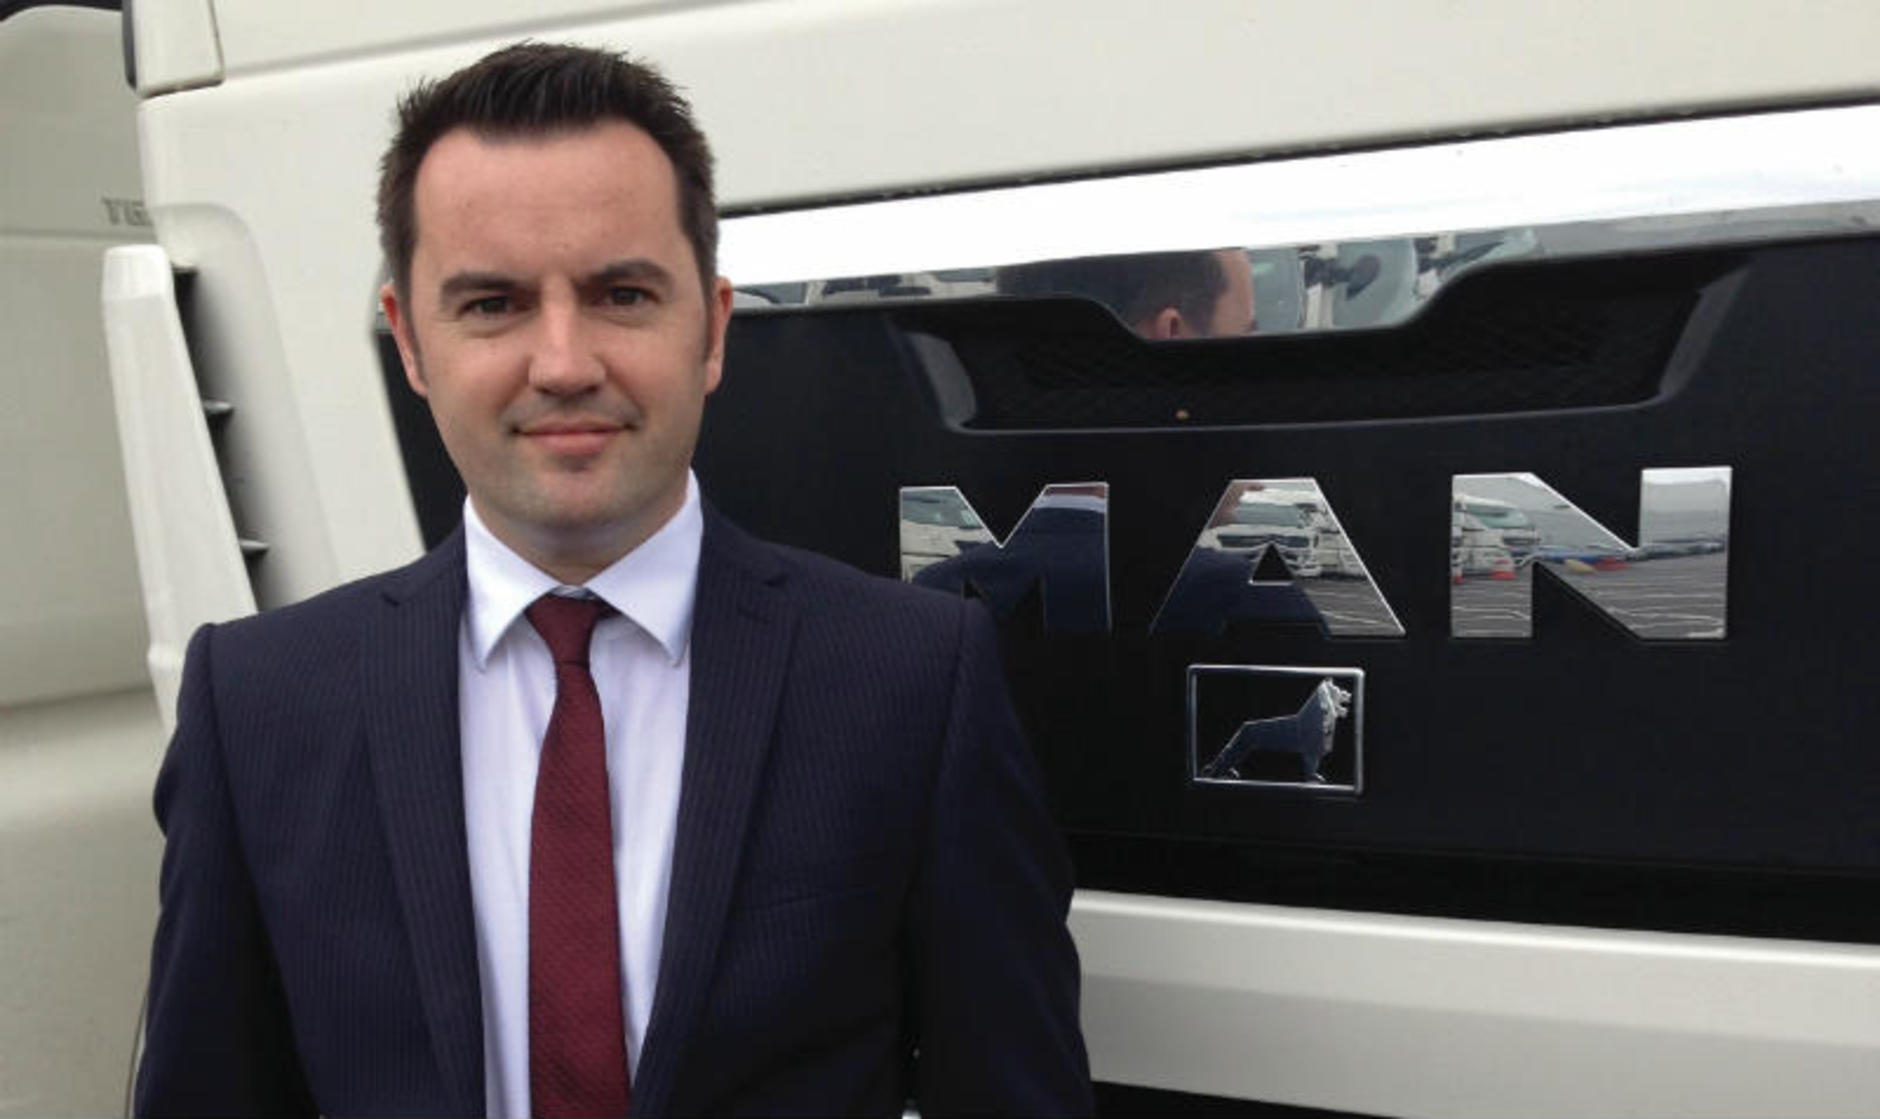 Robert Zubovic, network director, MAN Truck & Bus UK